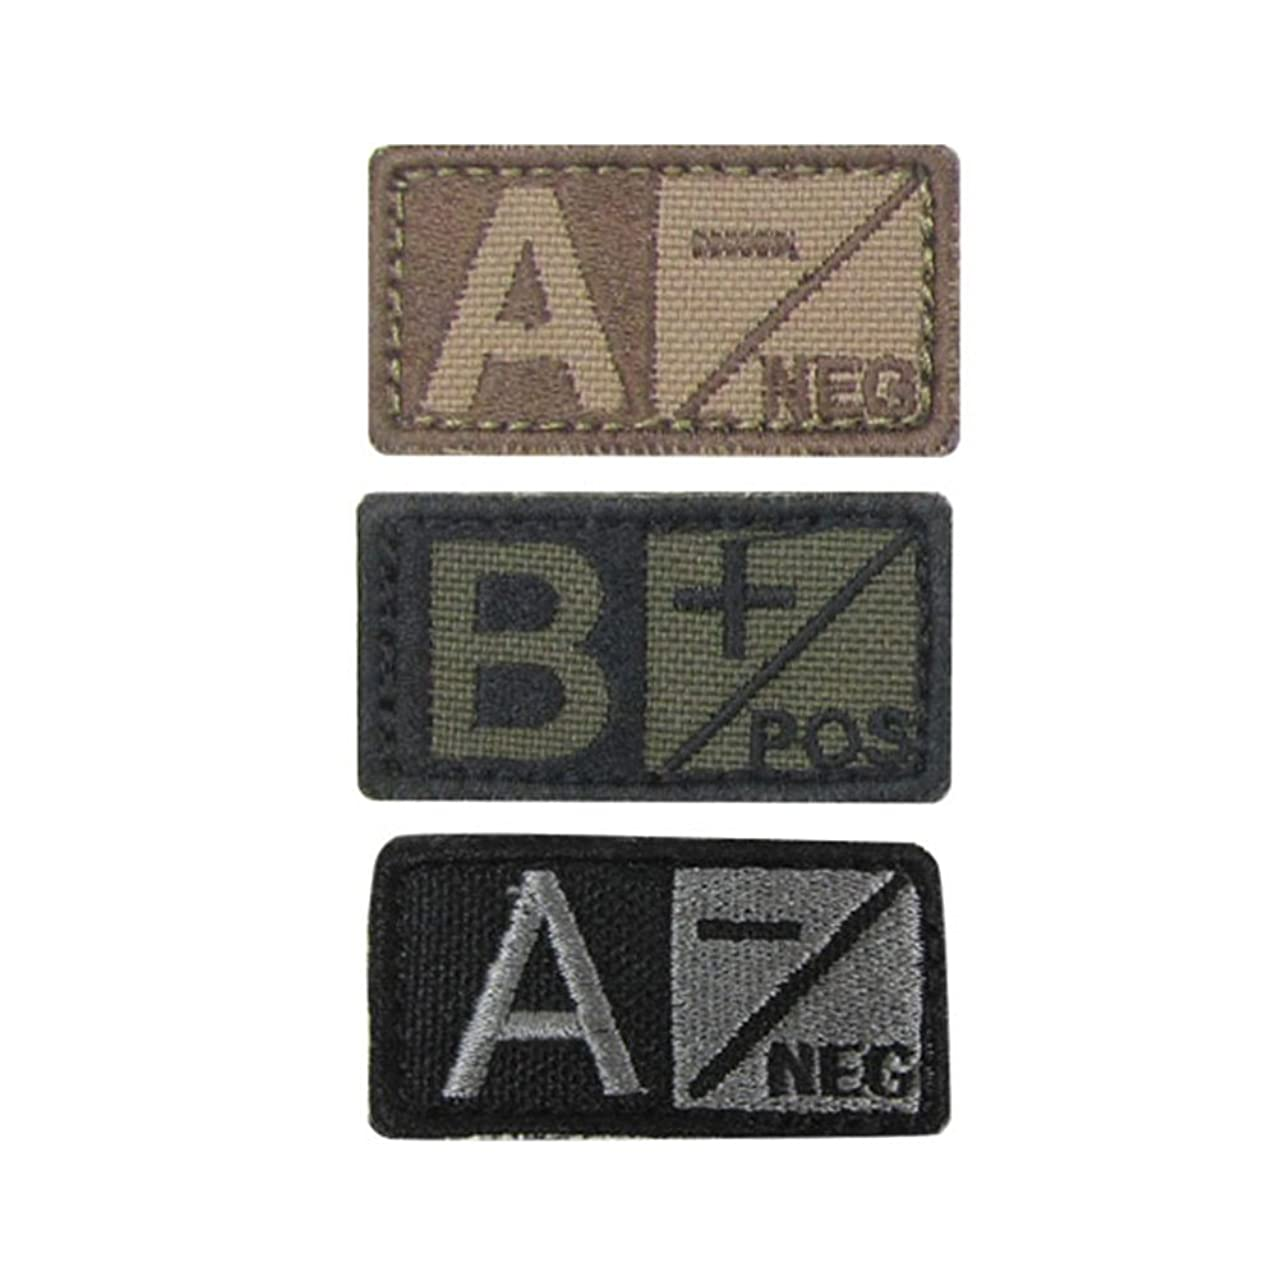 Condor Outdoor 229 Blood Type Patch - O Positive (1 Patch)